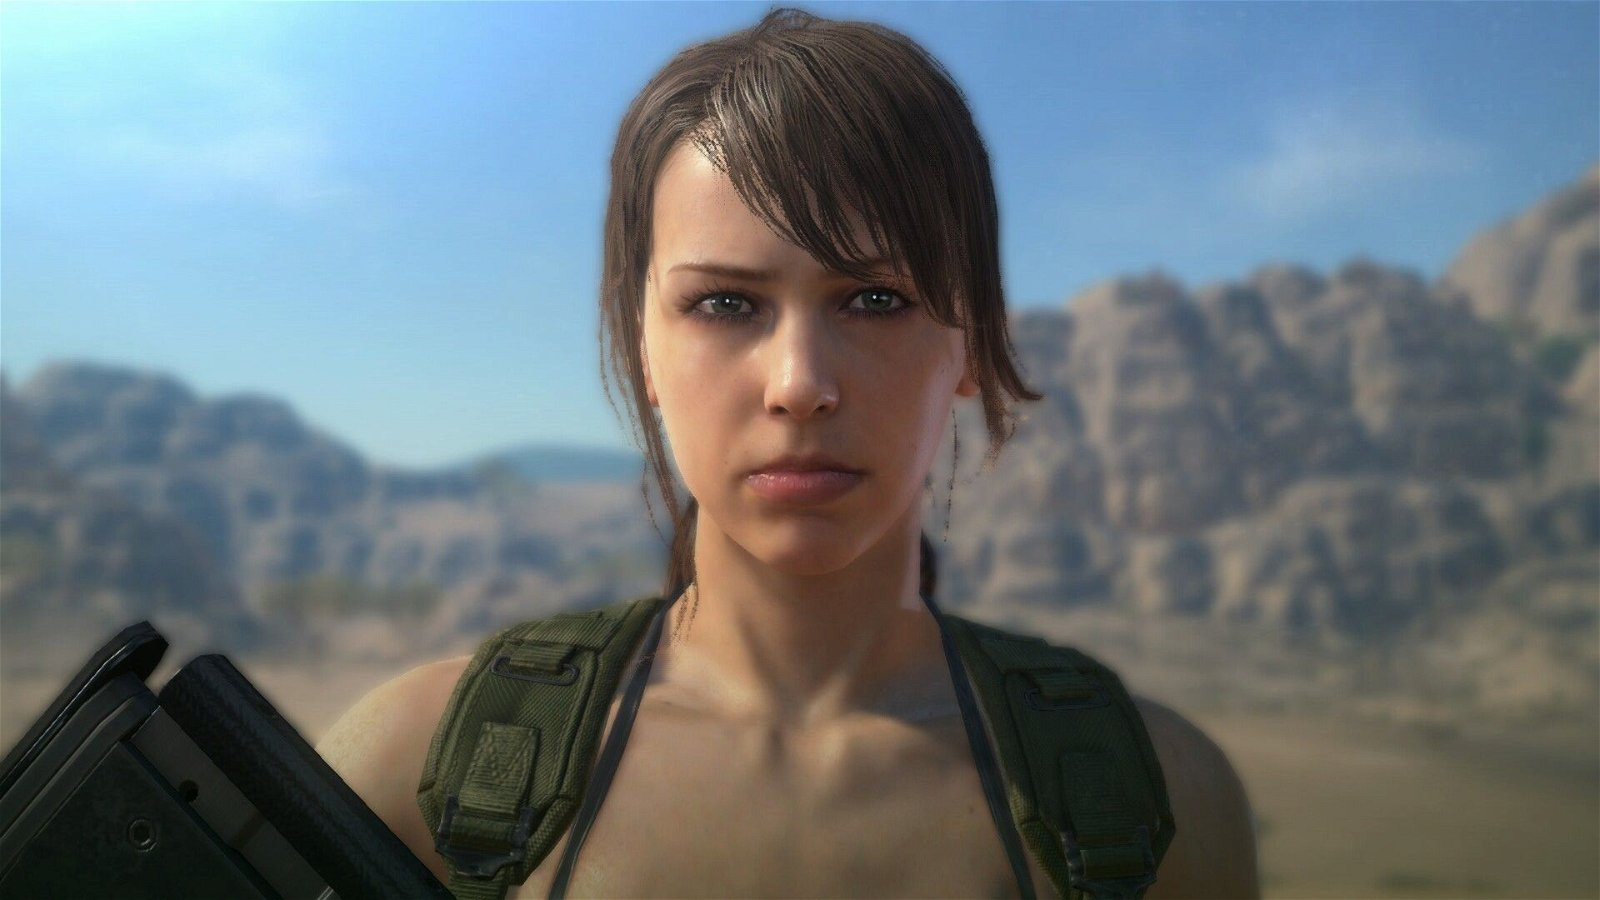 New Metal Gear Solid 5: The Phantom Pain Update Lets You Play As Quiet